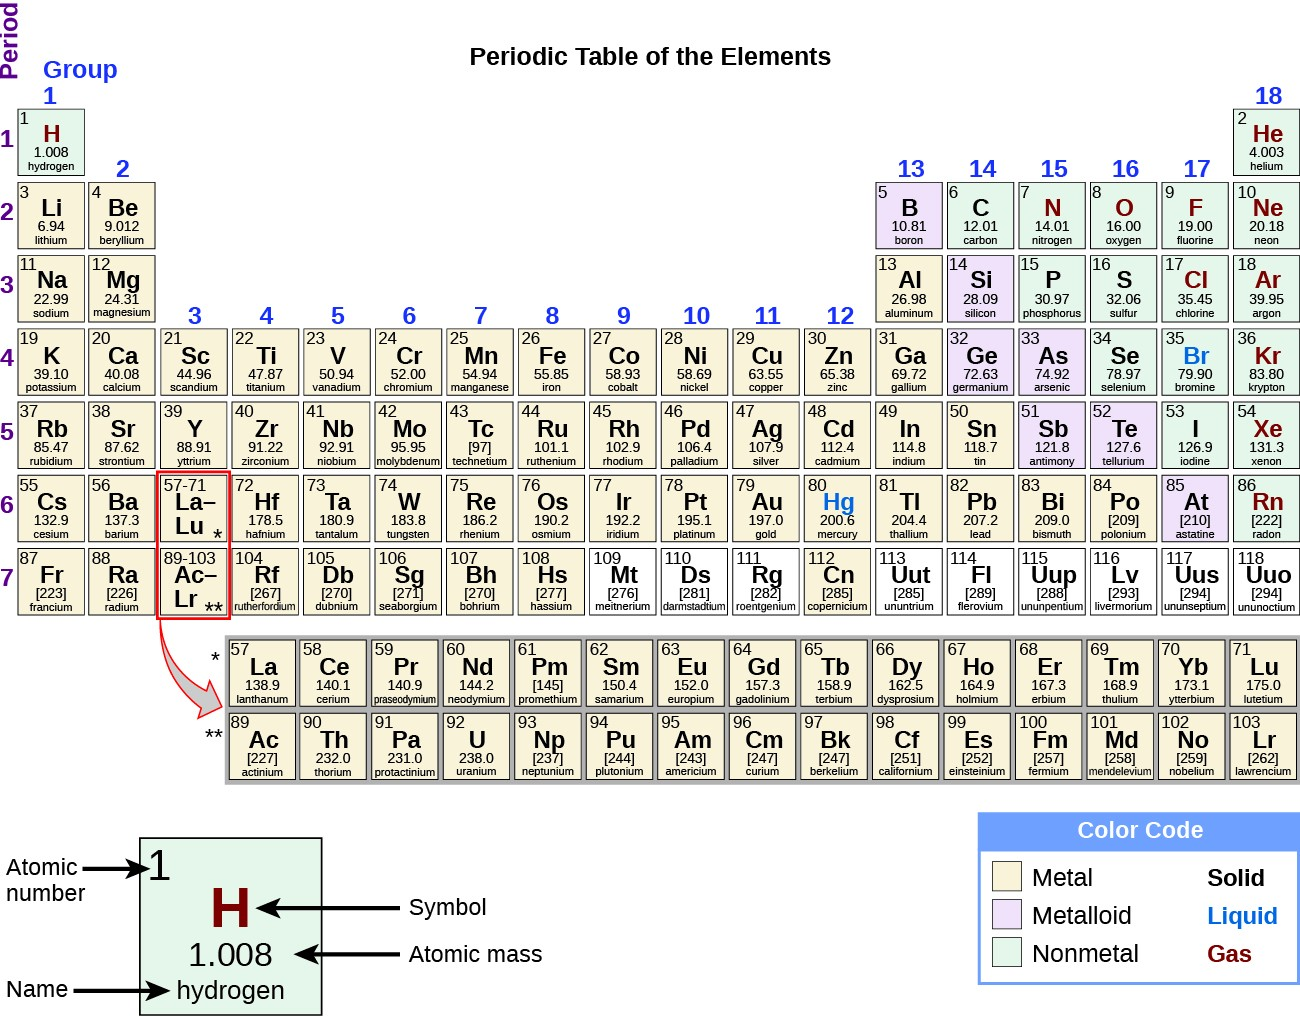 Labeled element on periodic table for 110 element in periodic table